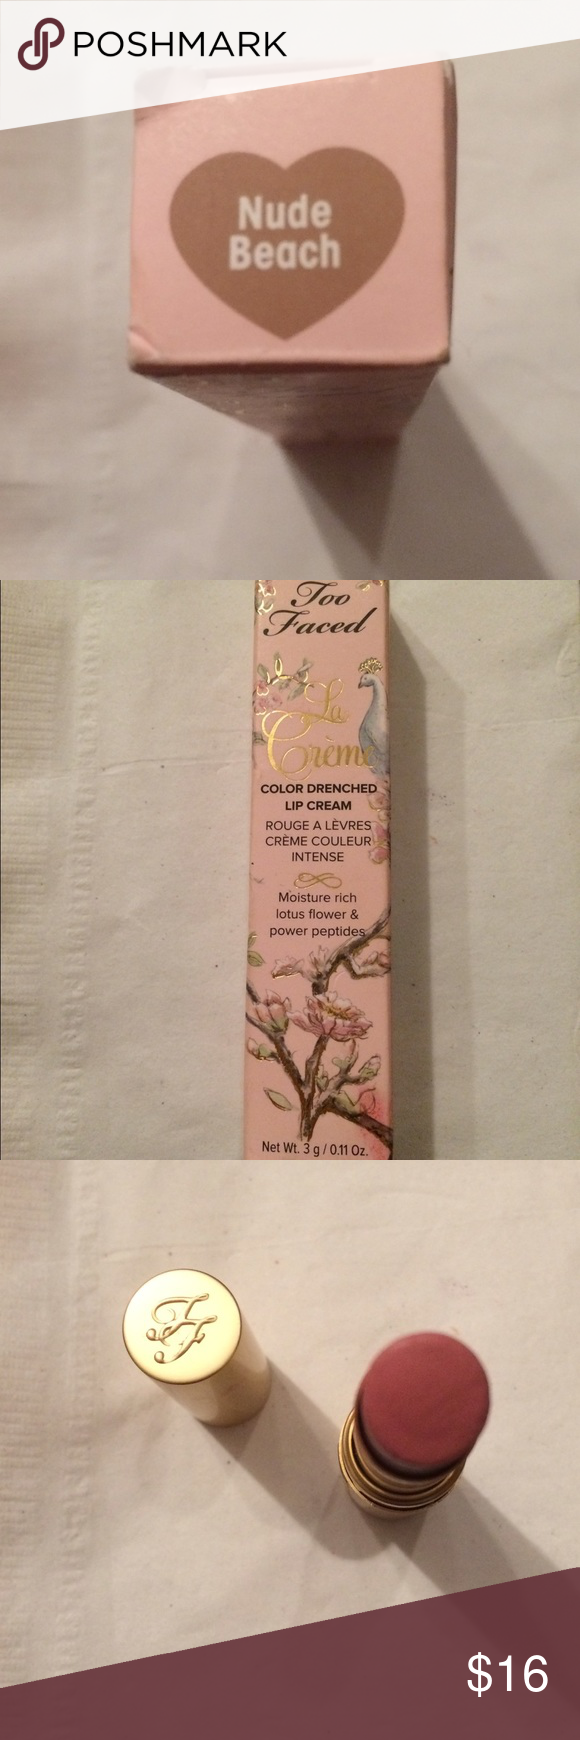 Too Faced Lipstick Too Faced la creme color drenched lipstick in Nude Beach Too Faced Makeup Lipstick